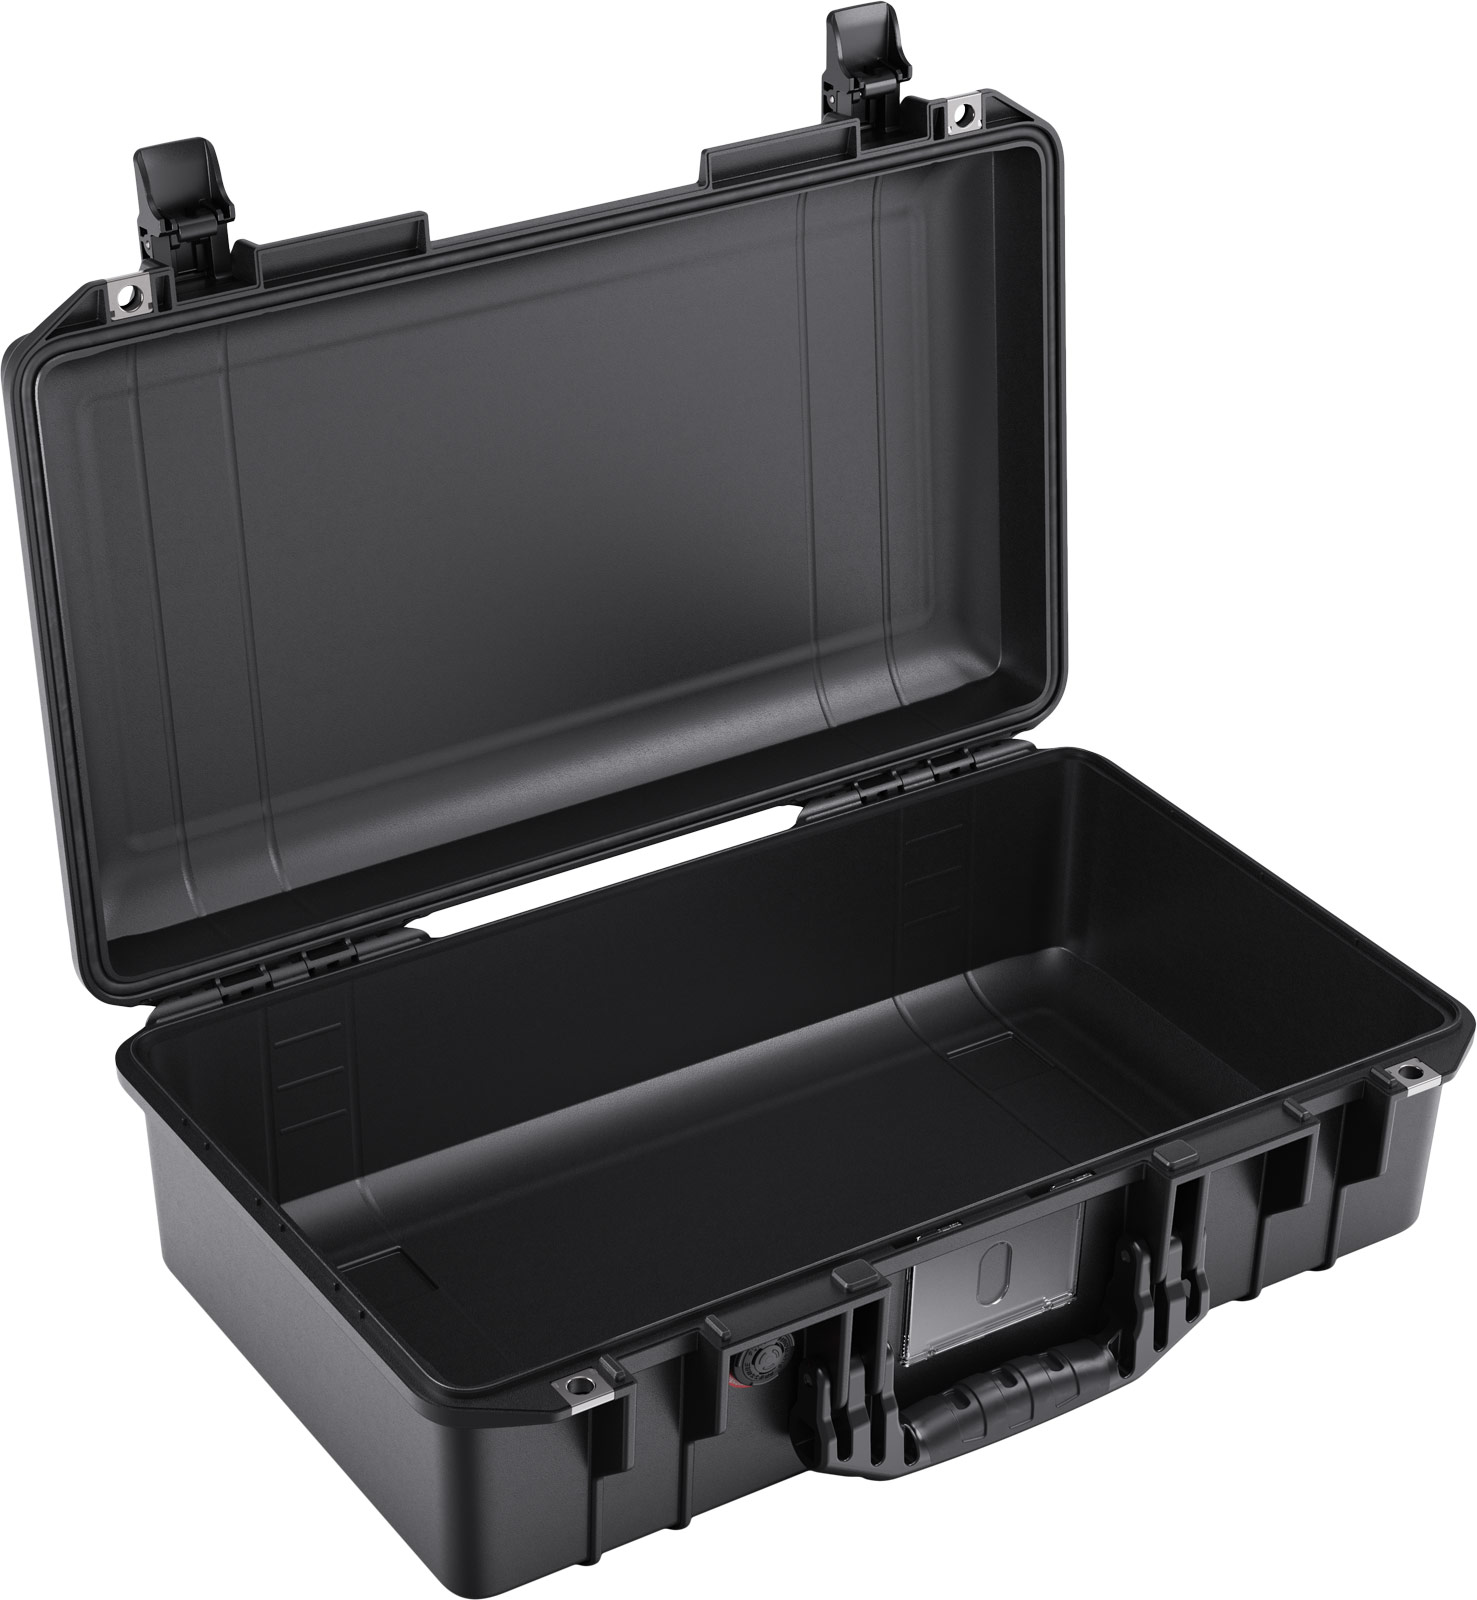 buy pelican air 1525 shop 1525nf lightweight travel case